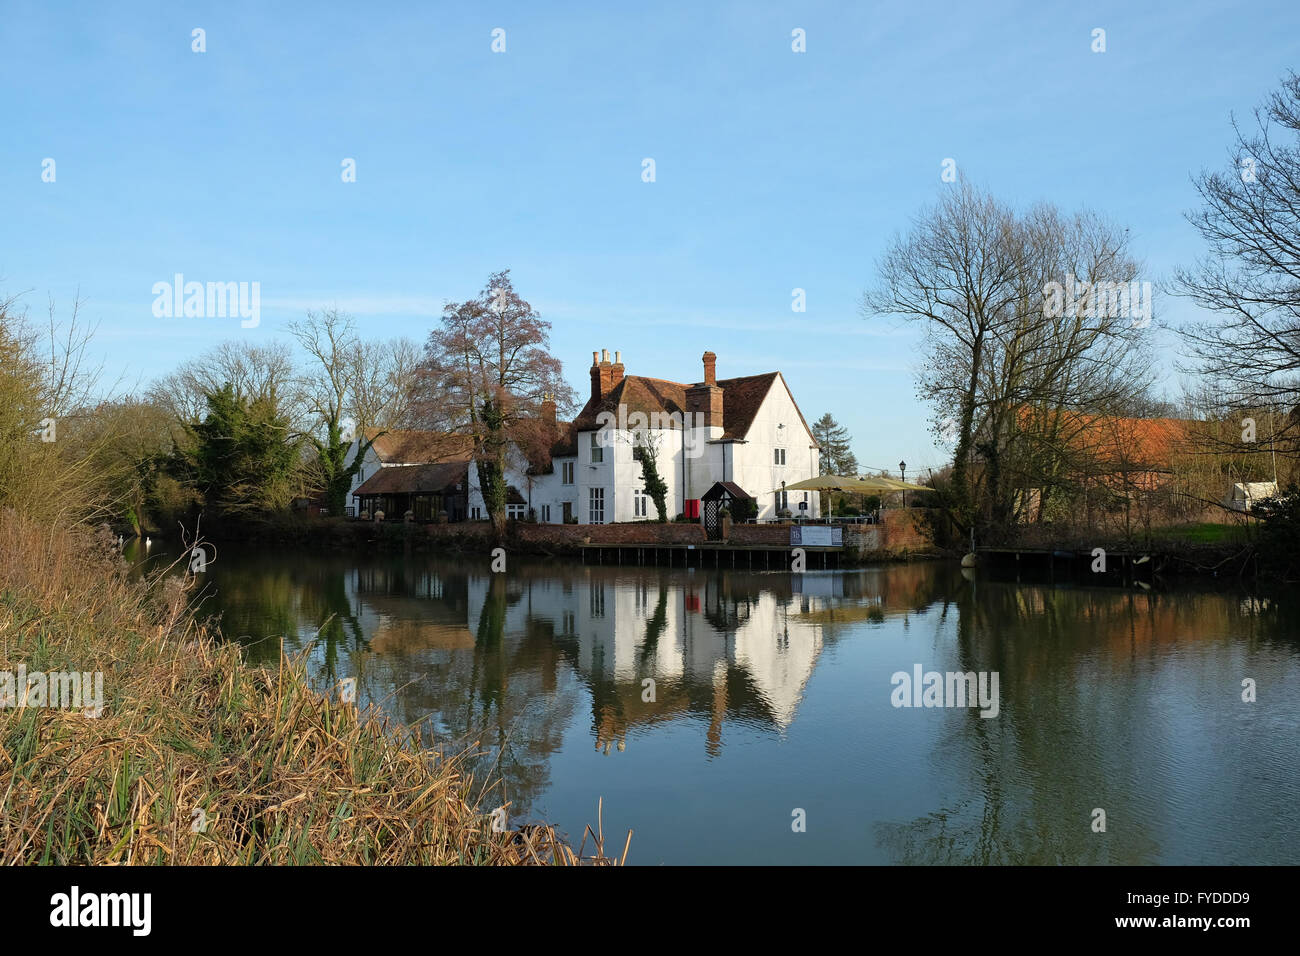 The Riverside Pub, Bedford, Bedfordshire, England - Stock Image